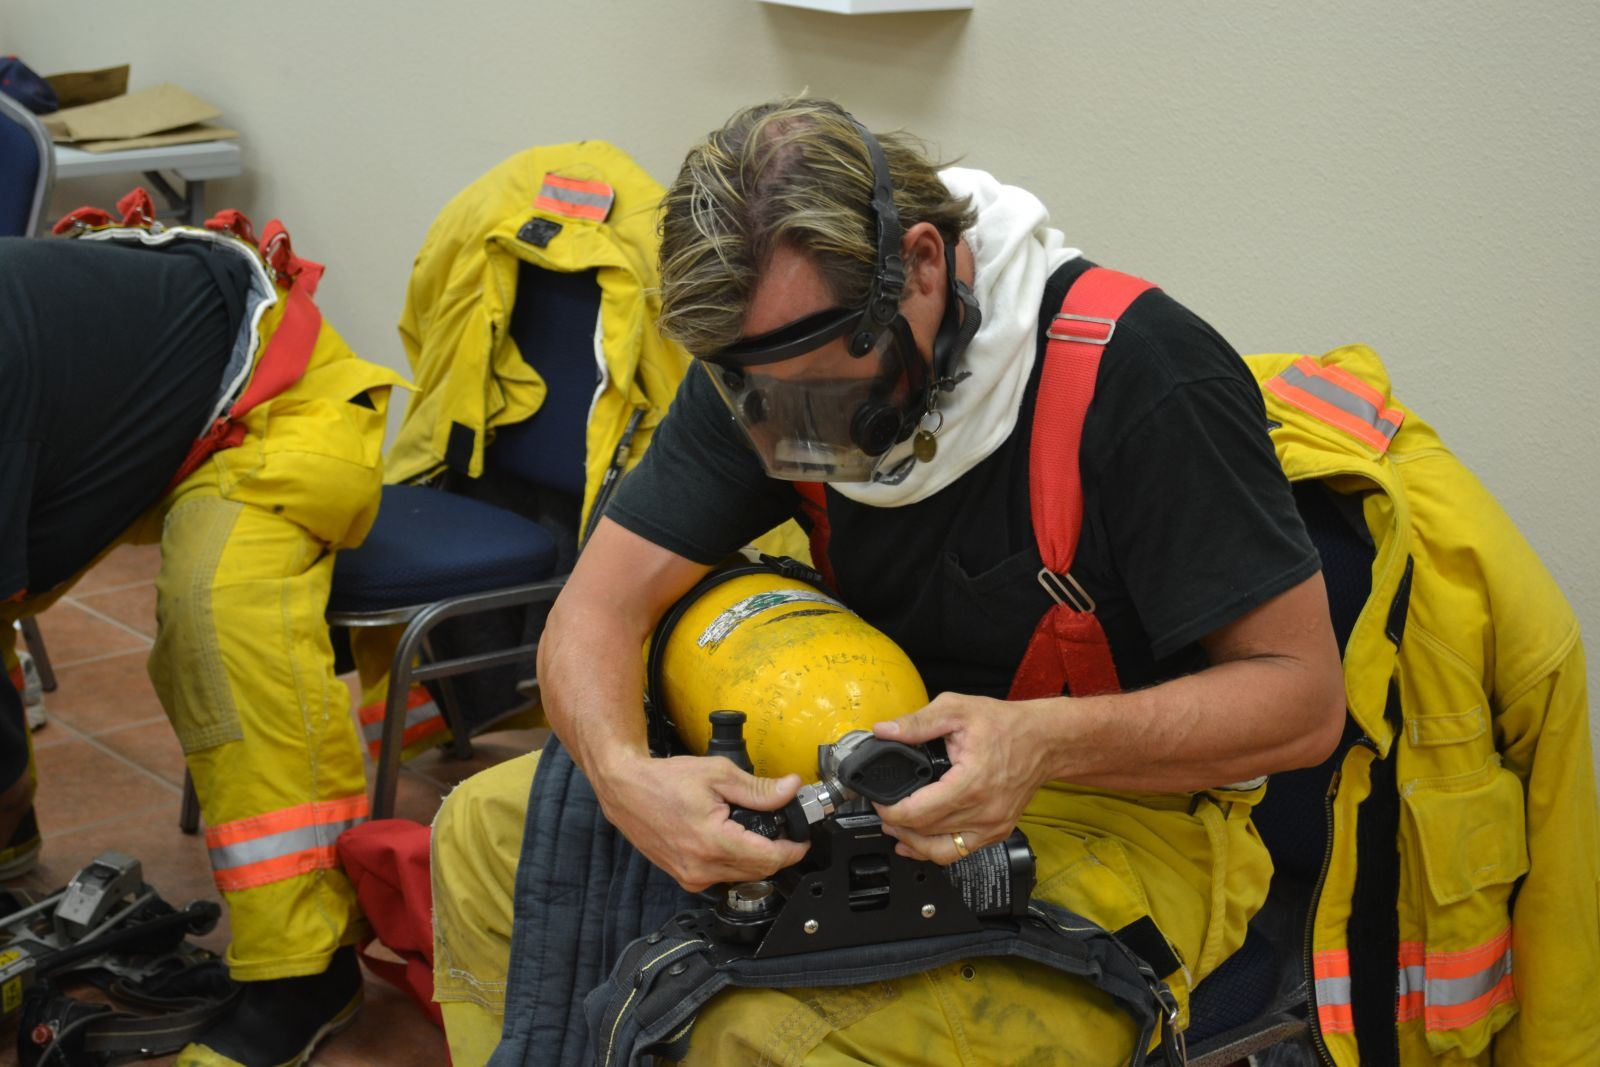 Issuing Personal Firefighting Gear